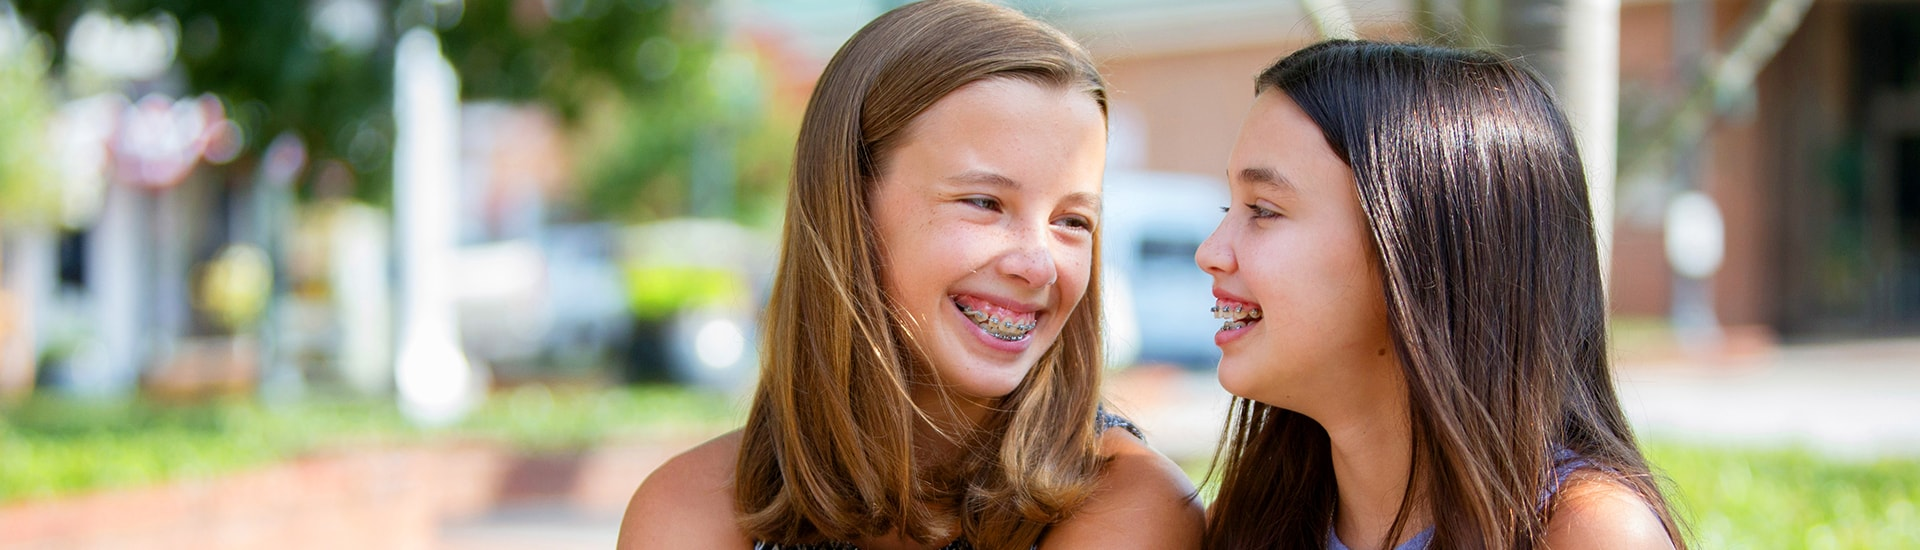 young blonde girl with braces and young brunette girl with braces, smiling and laughing outside